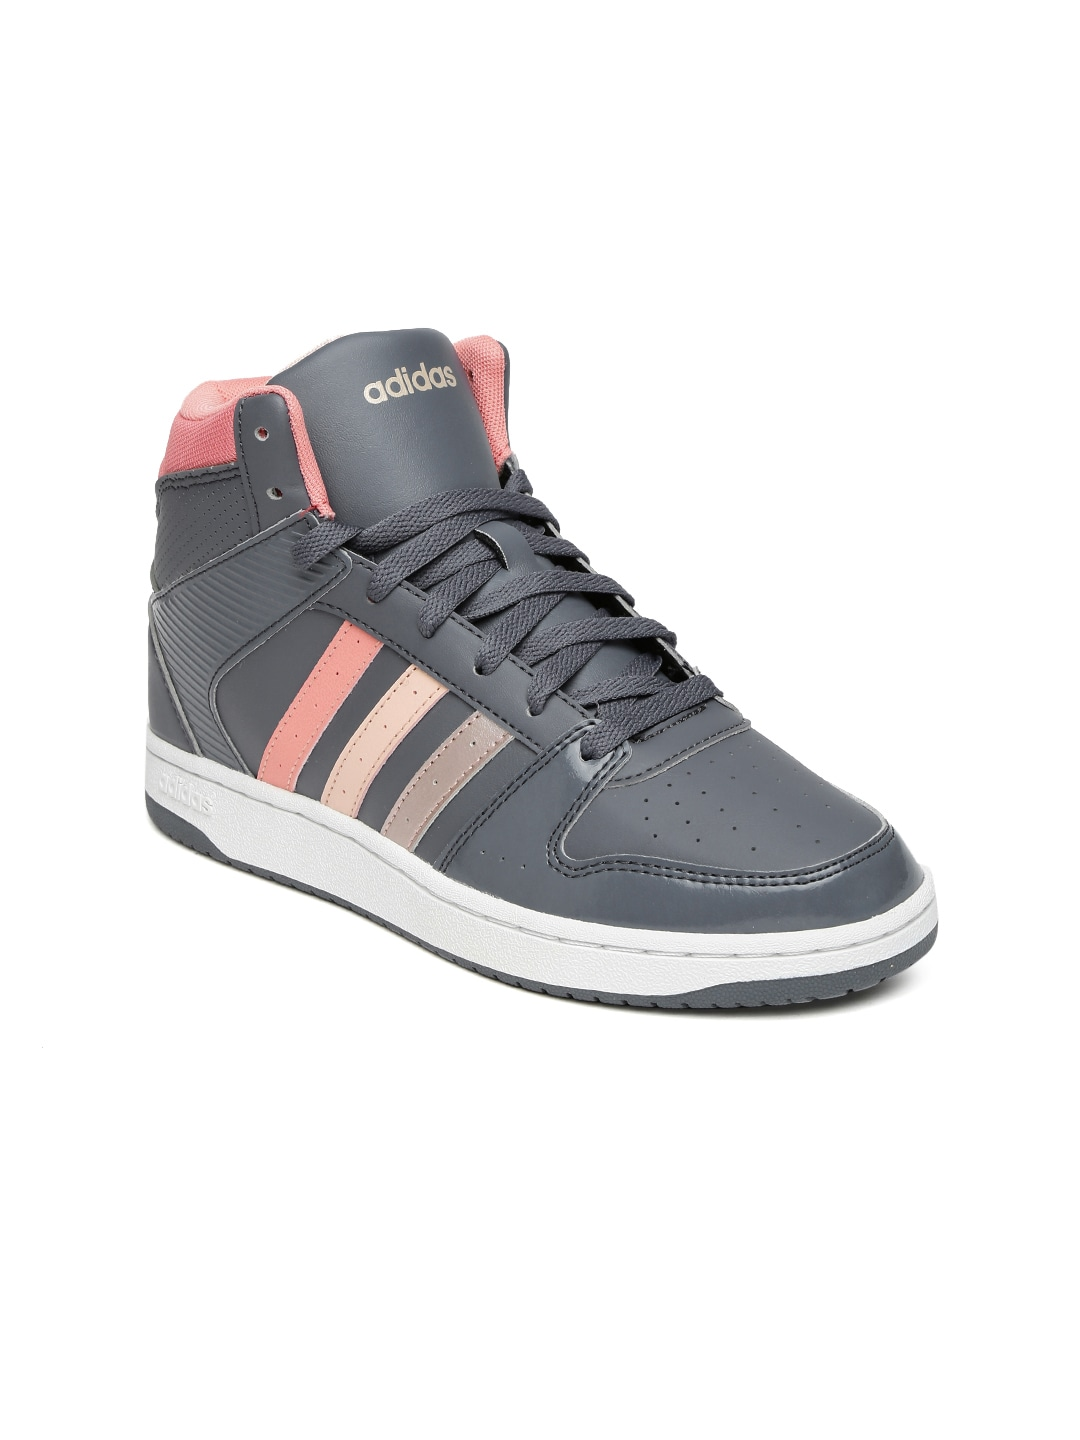 Neo in Neo India Adidas Shoes Adidas Shoes online Buy dotrBxChsQ